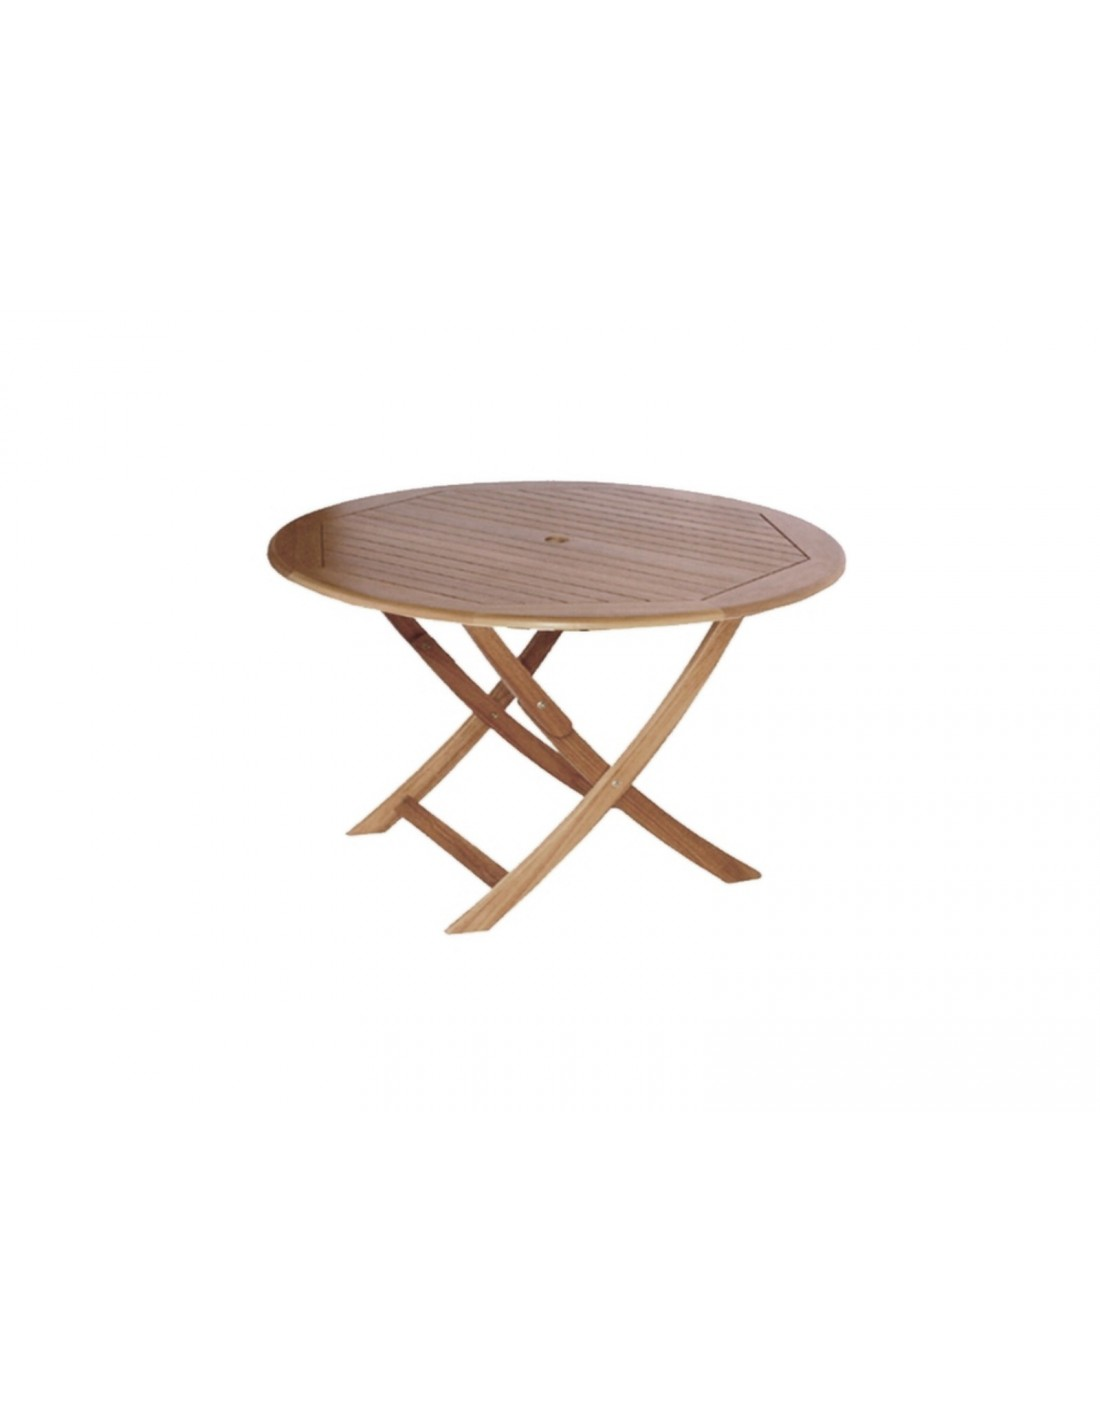 Table sophie pliante en bois d 39 eucalyptus proloisirs for Table de jardin pliante